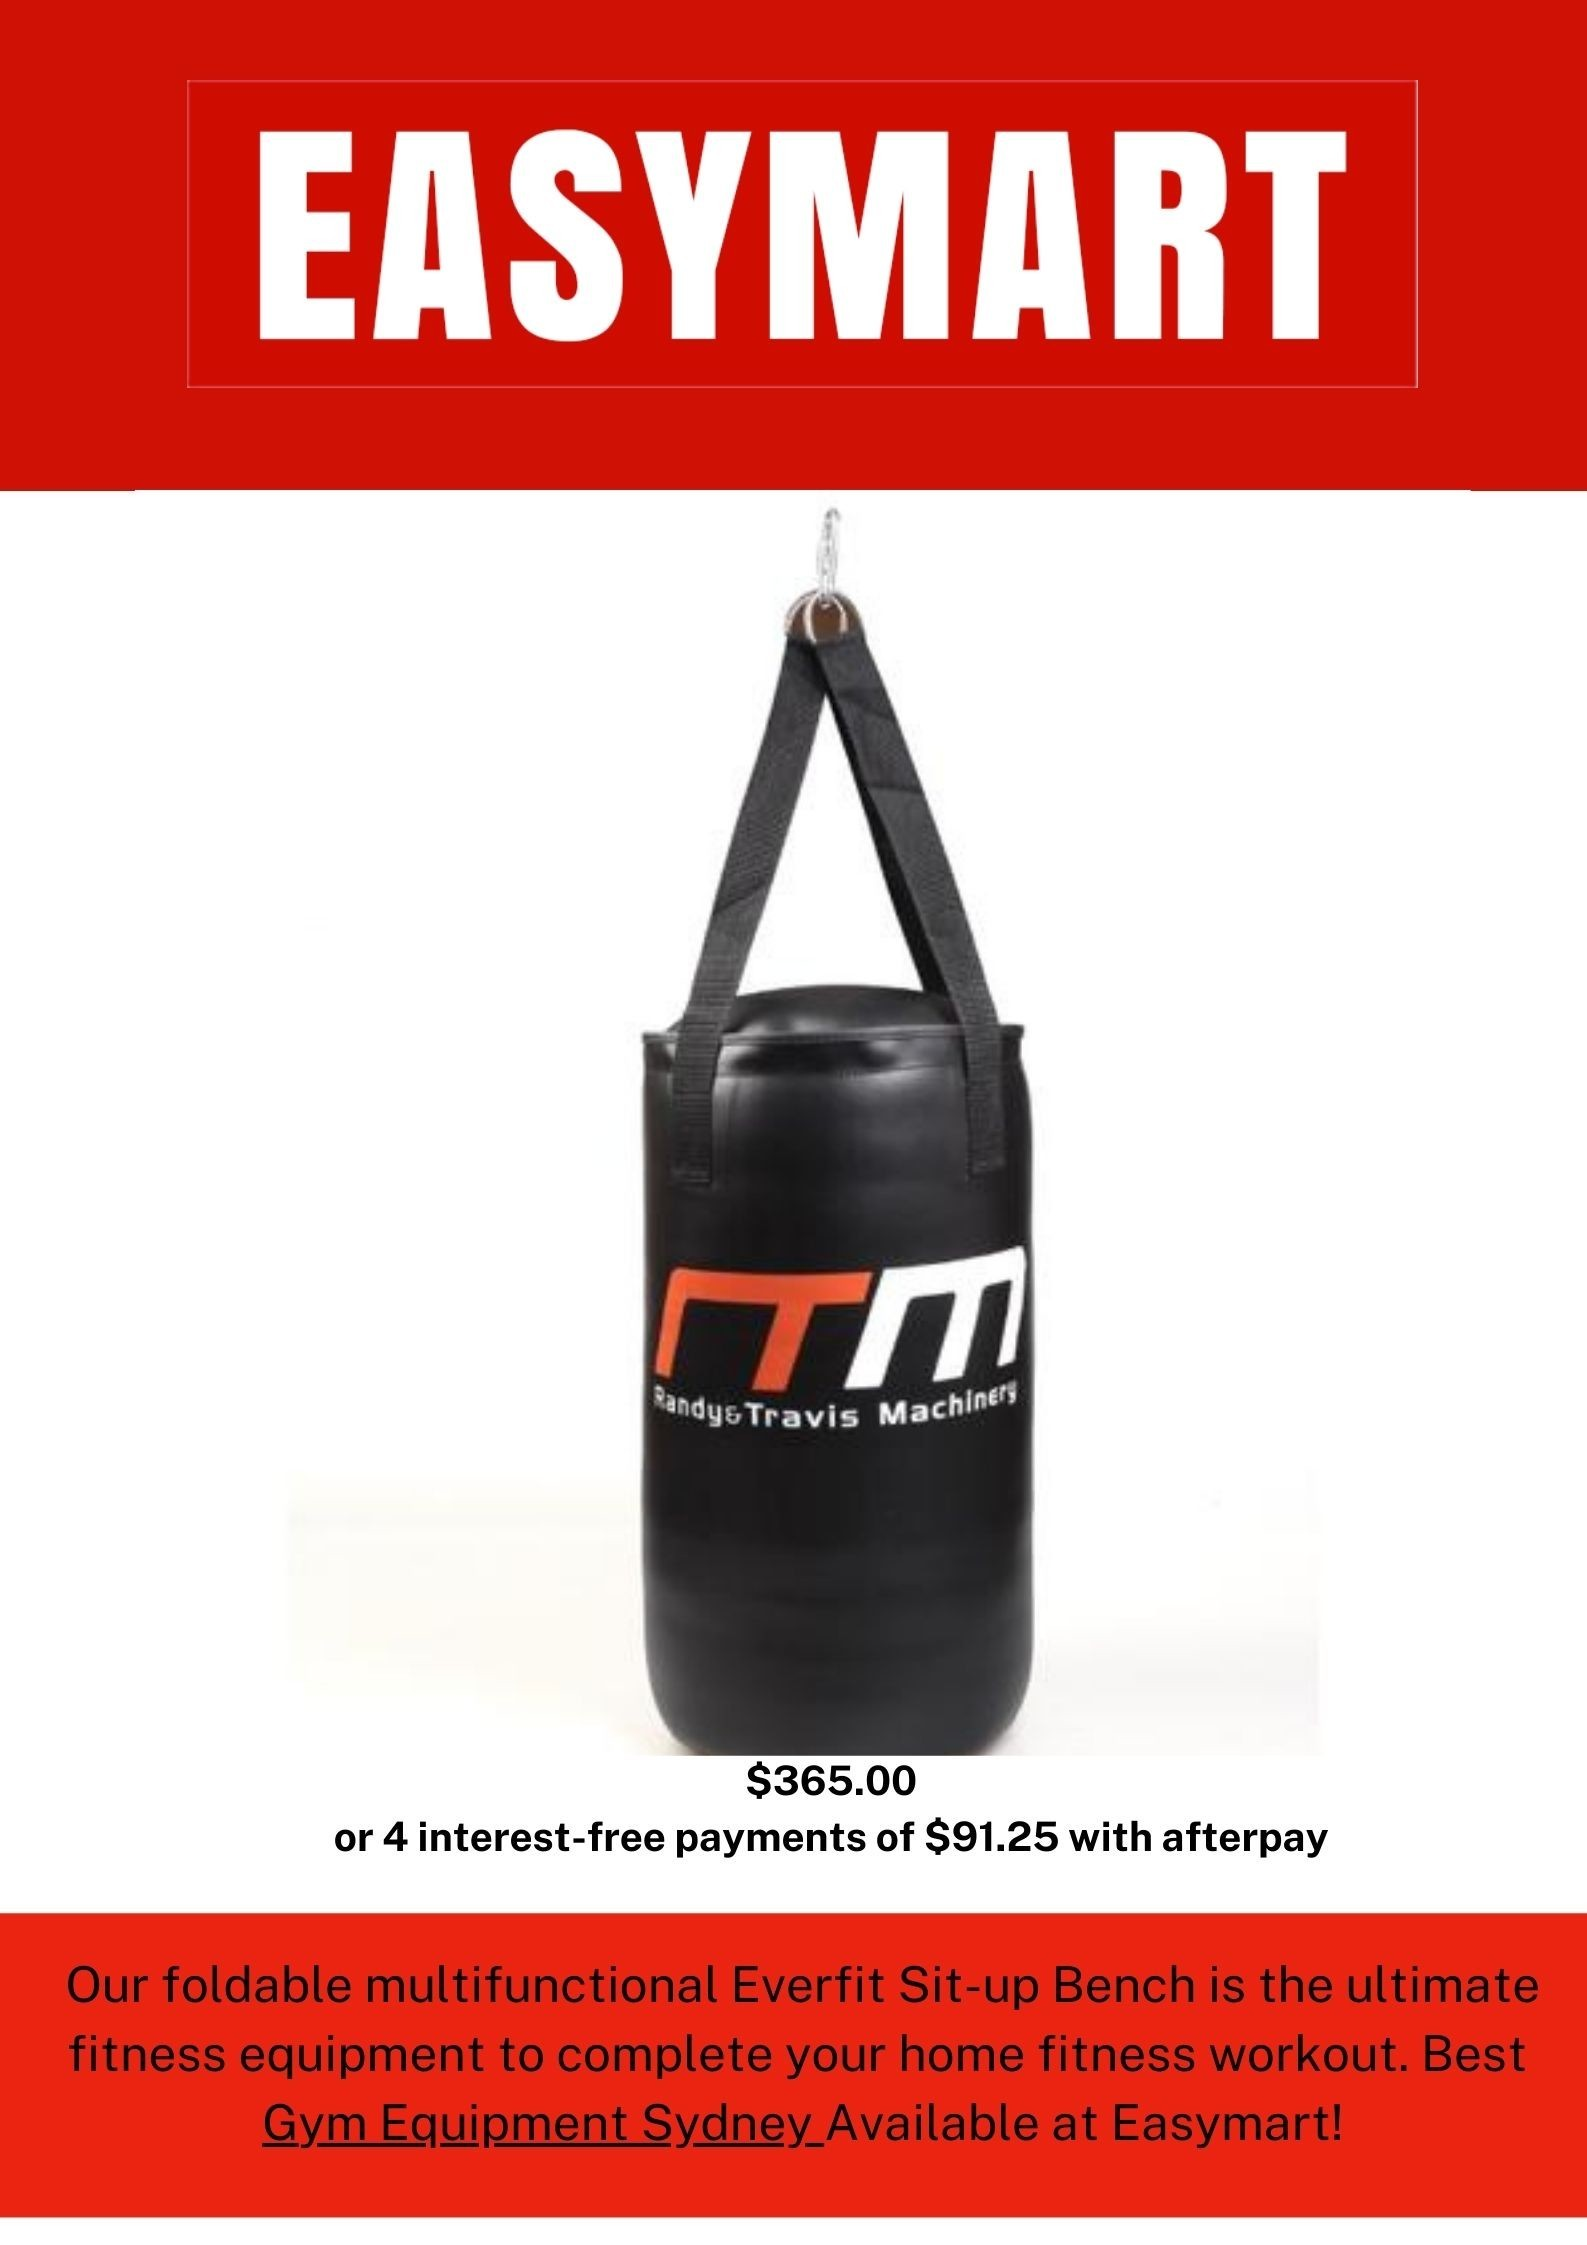 Sports Fitness and Training and Gym Equipment Online- Easymart Australia